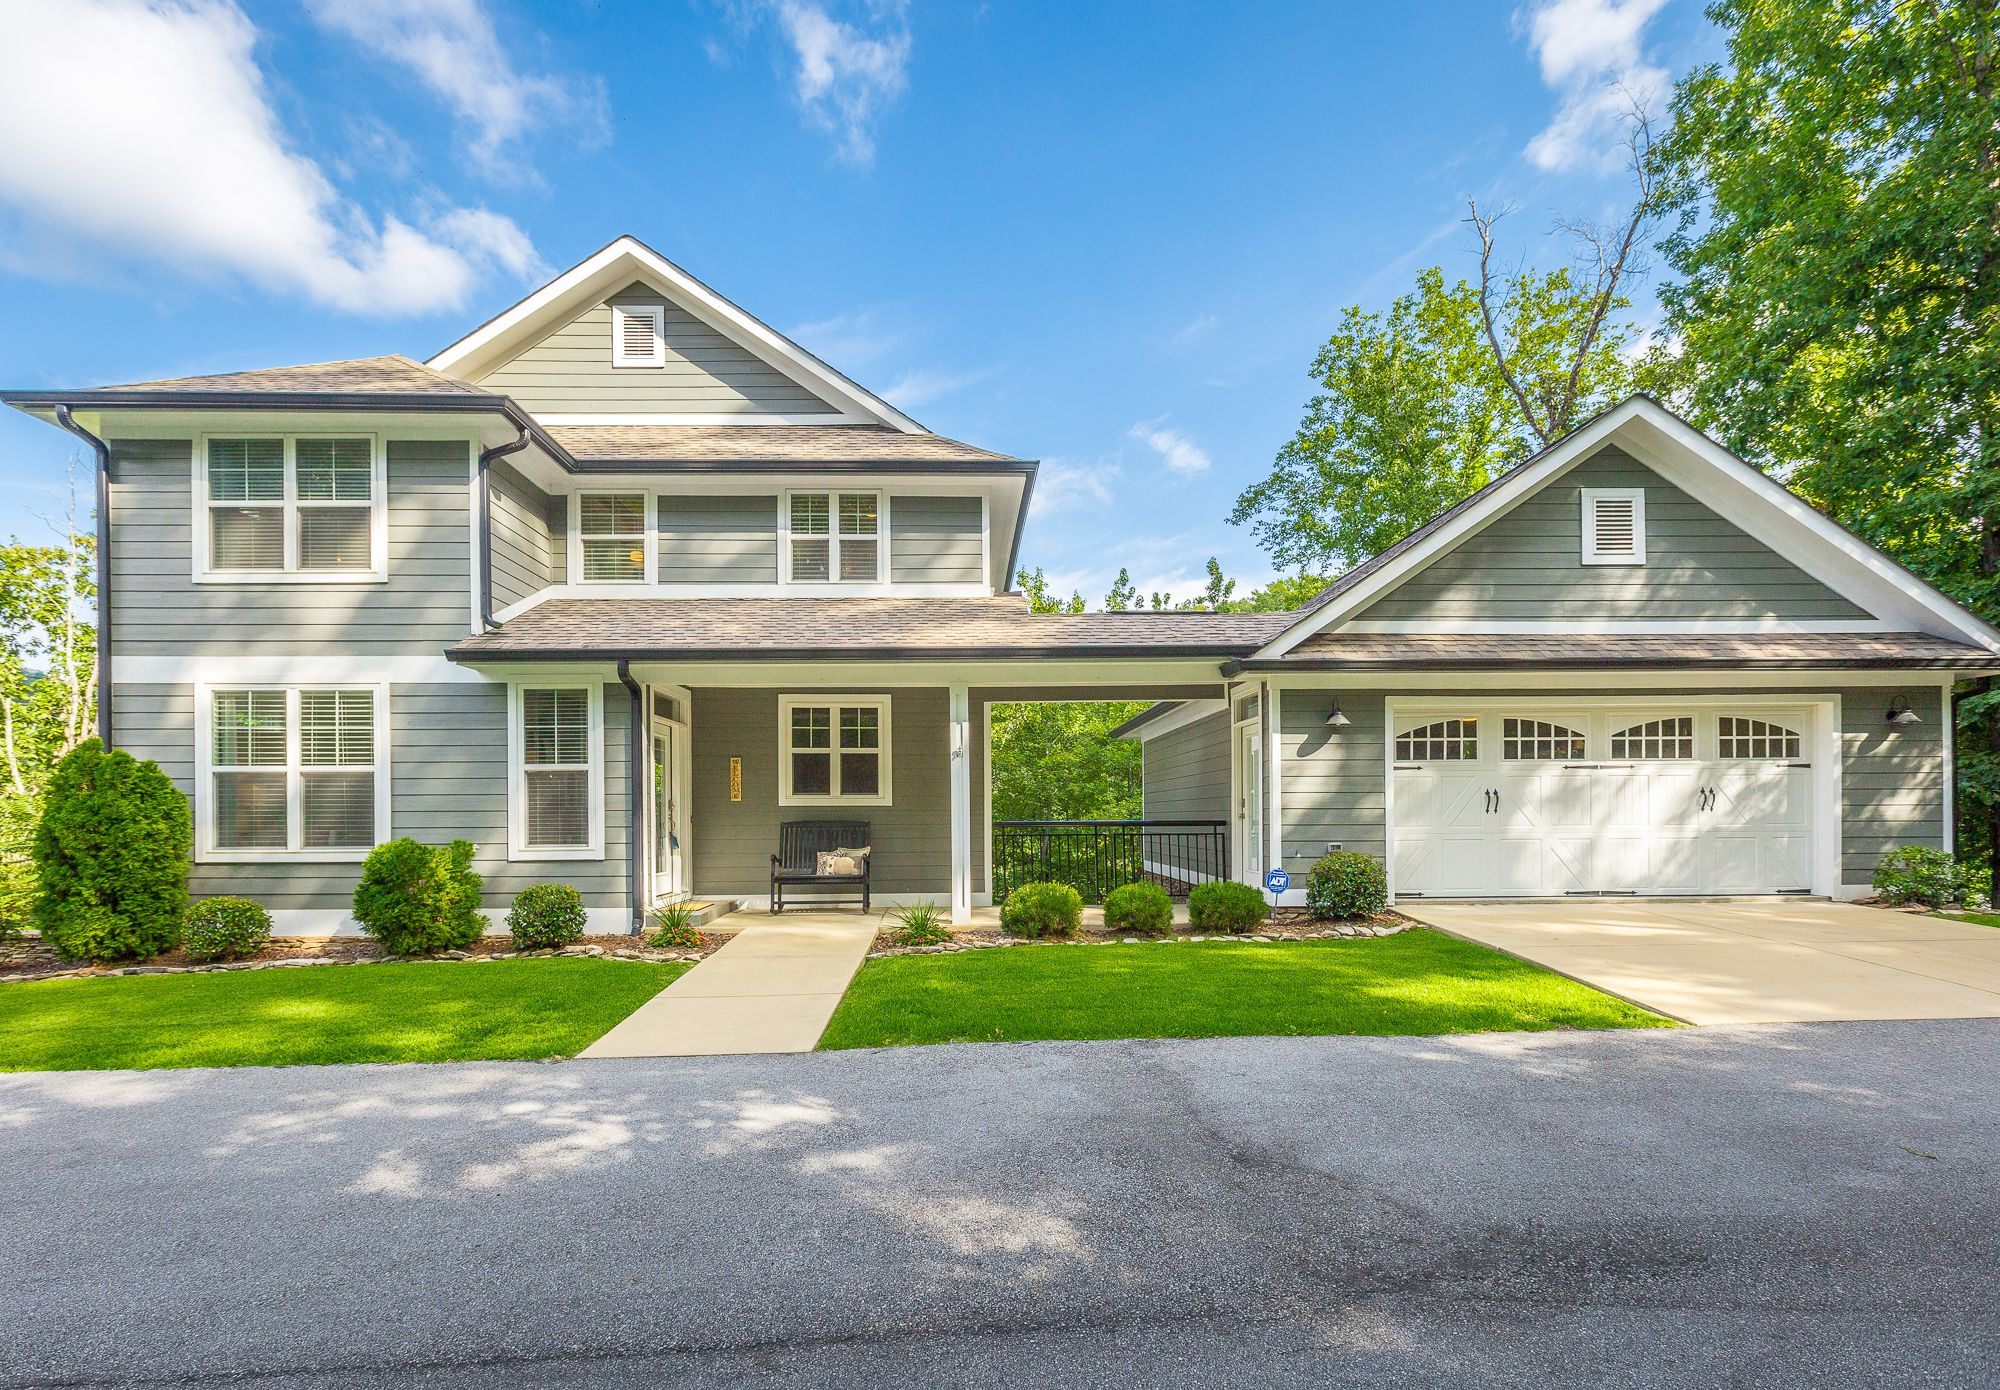 Sold North Chattanooga 845 Stellar View Zoned For Normal Park Private Setting 5 Br 5 Ba Full Bsm Waterfront Homes Real Estate Selling Real Estate